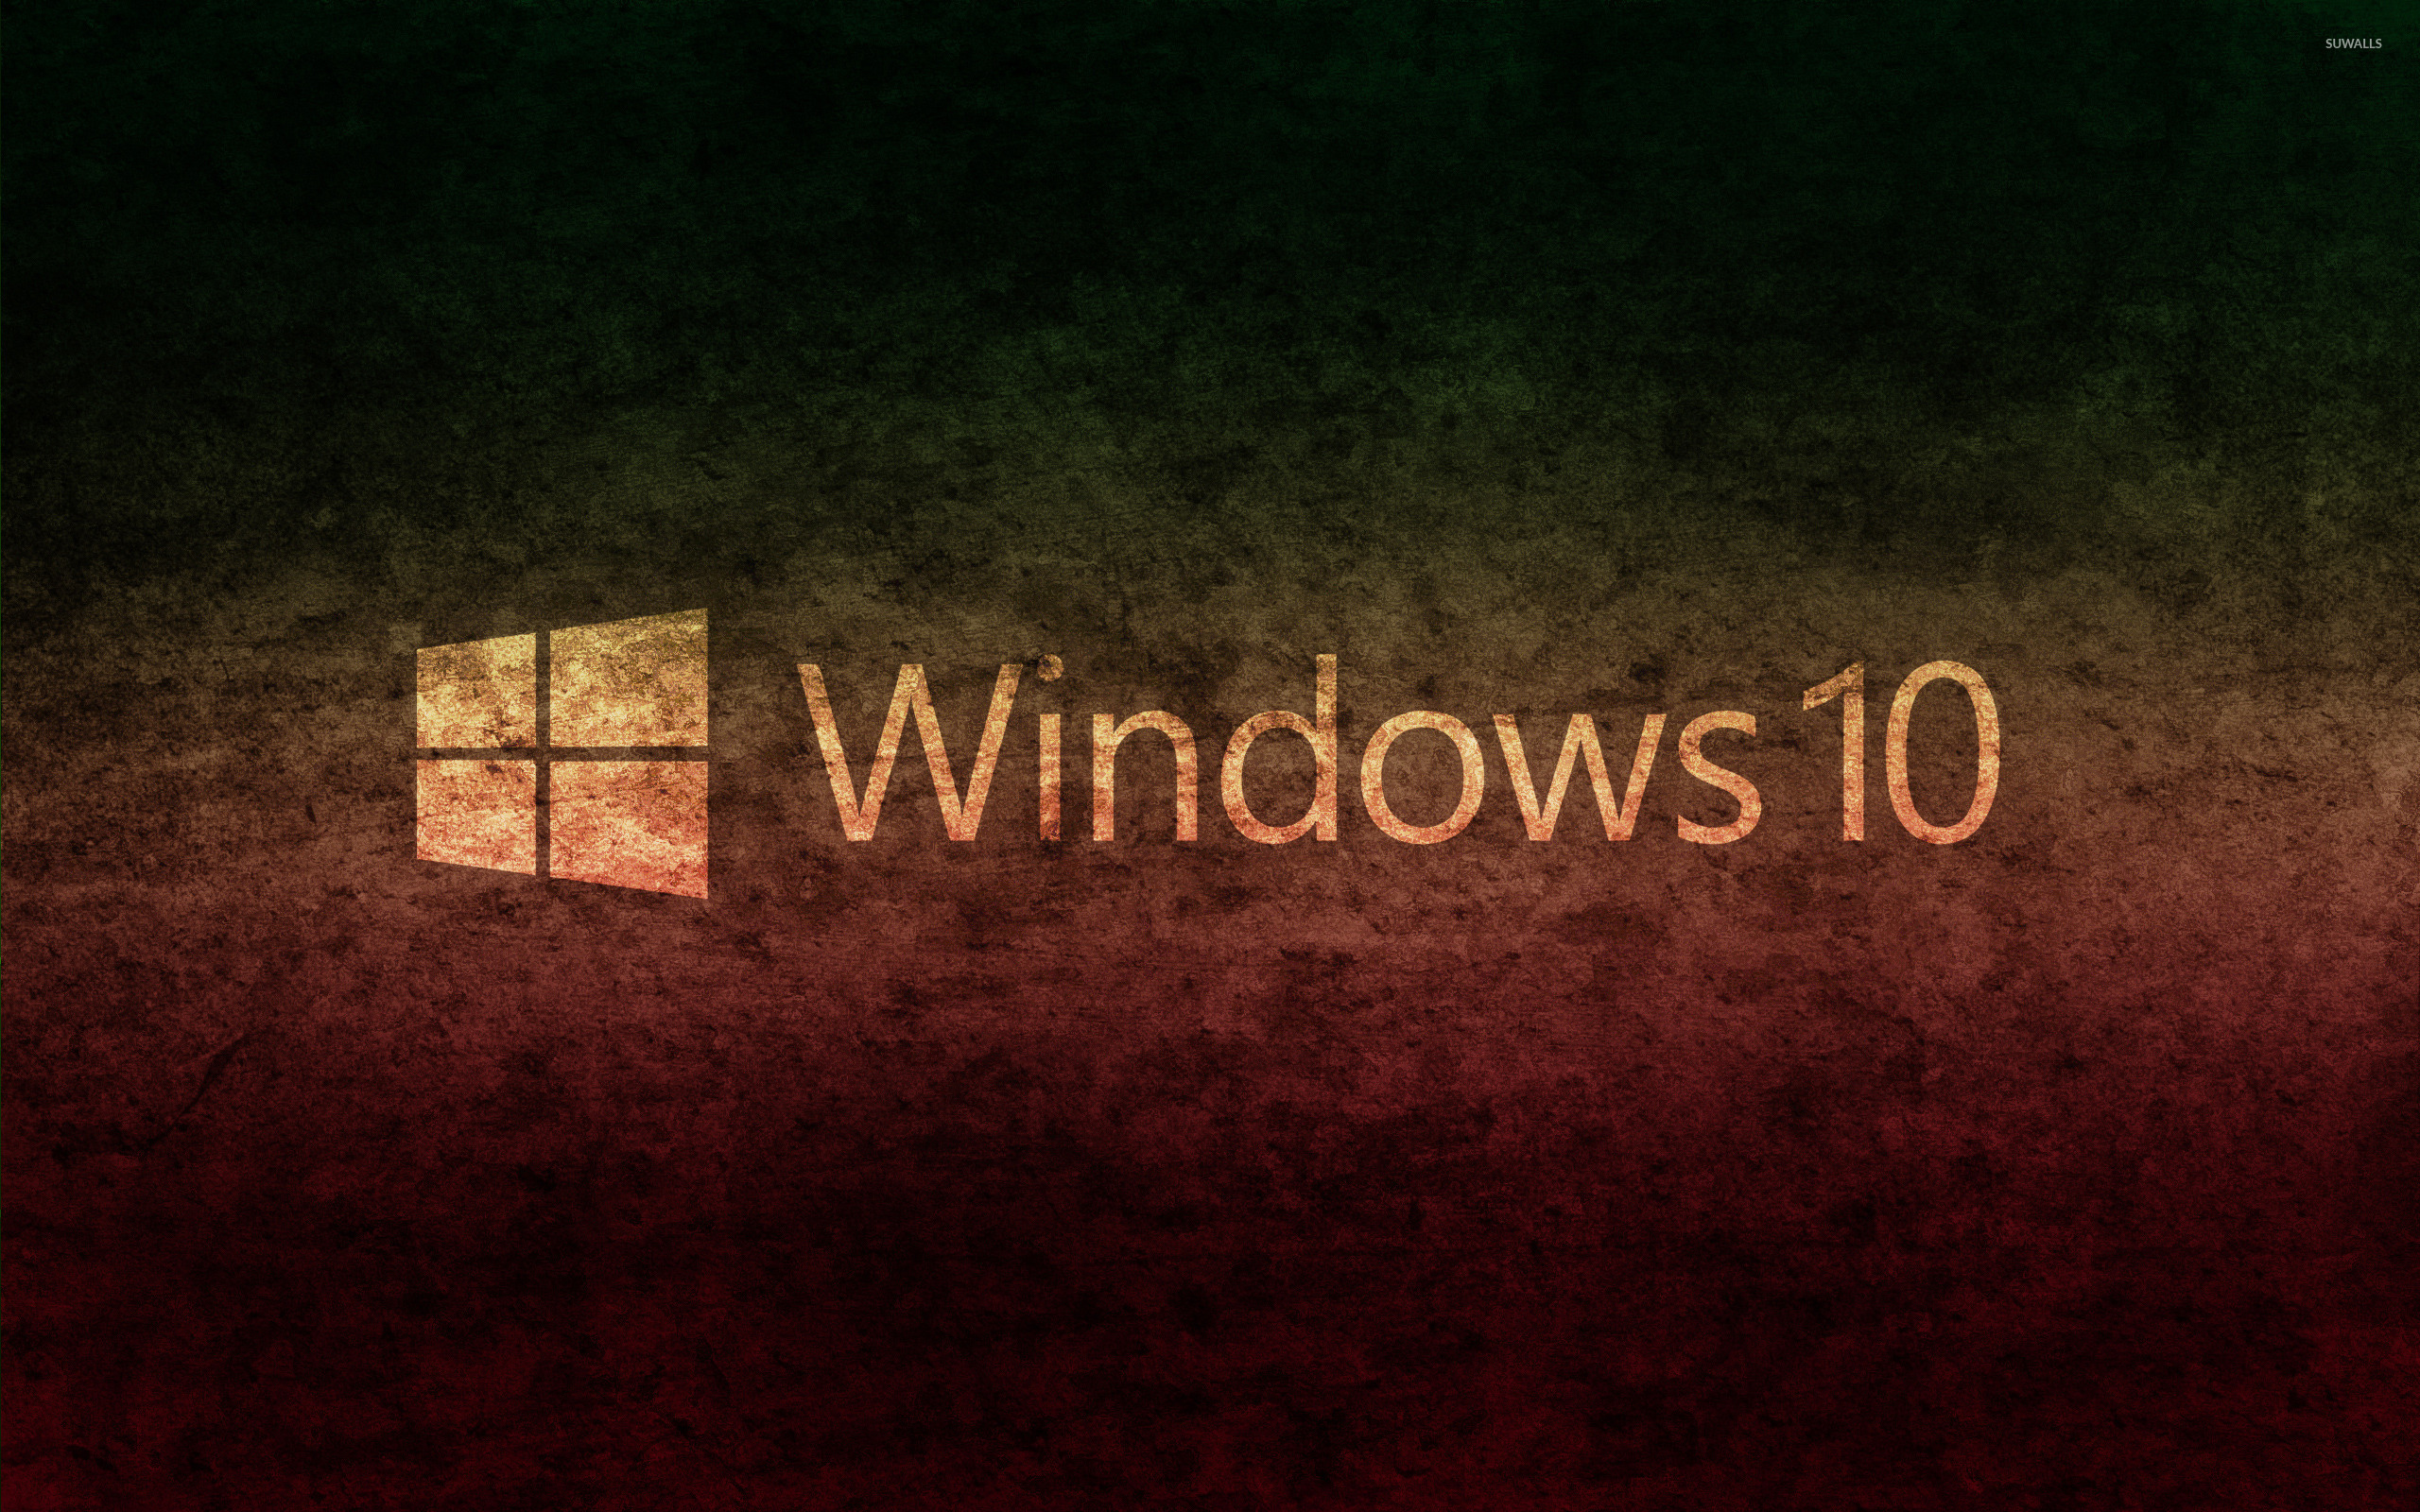 Fall Typography Laptop Wallpaper Windows 10 Transparent Text Logo On Concrete Wallpaper